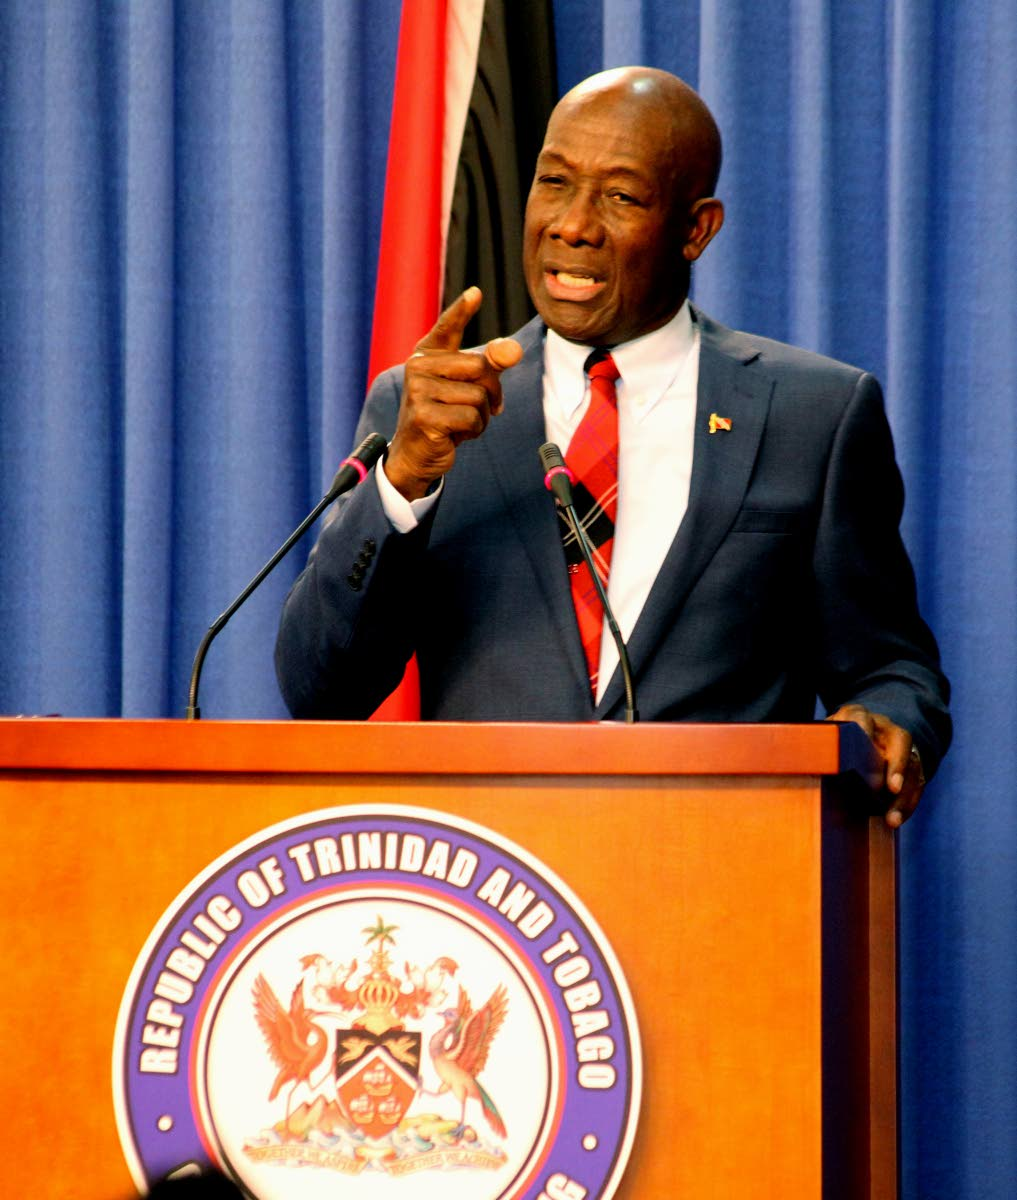 Prime Minister Dr Keith Rowley addresses the members of the media. PHOTO BY ROGER JACOB